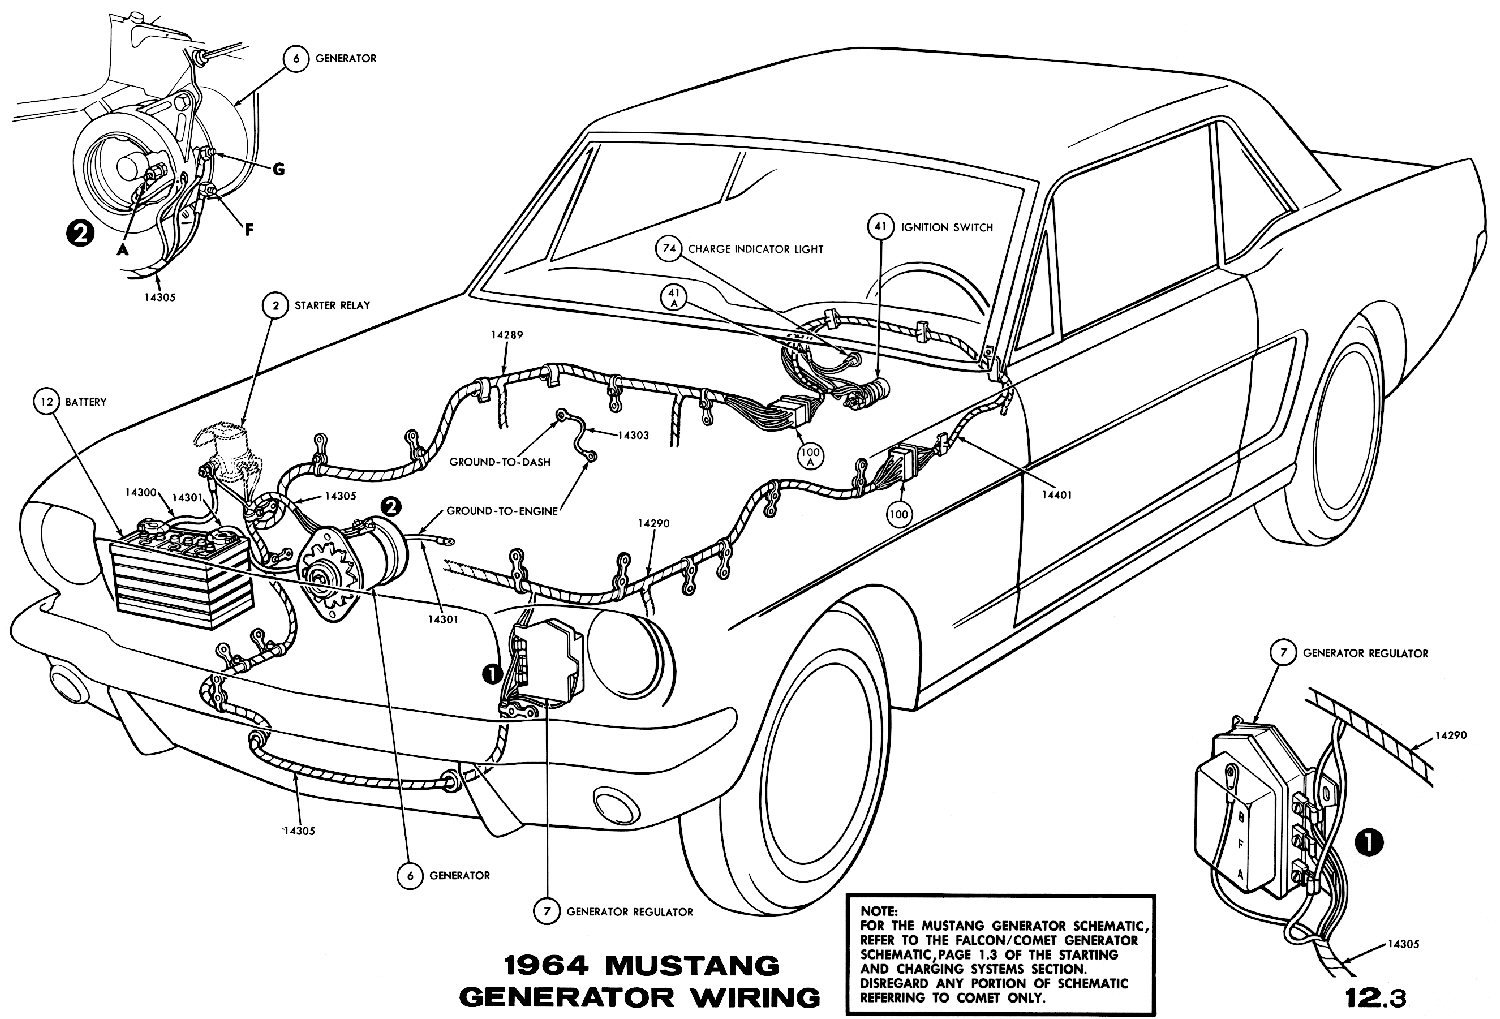 1964f 1966 mustang wiring diagram 1966 mustang radio diagram \u2022 free 1968 mustang tail light wiring diagram at bakdesigns.co